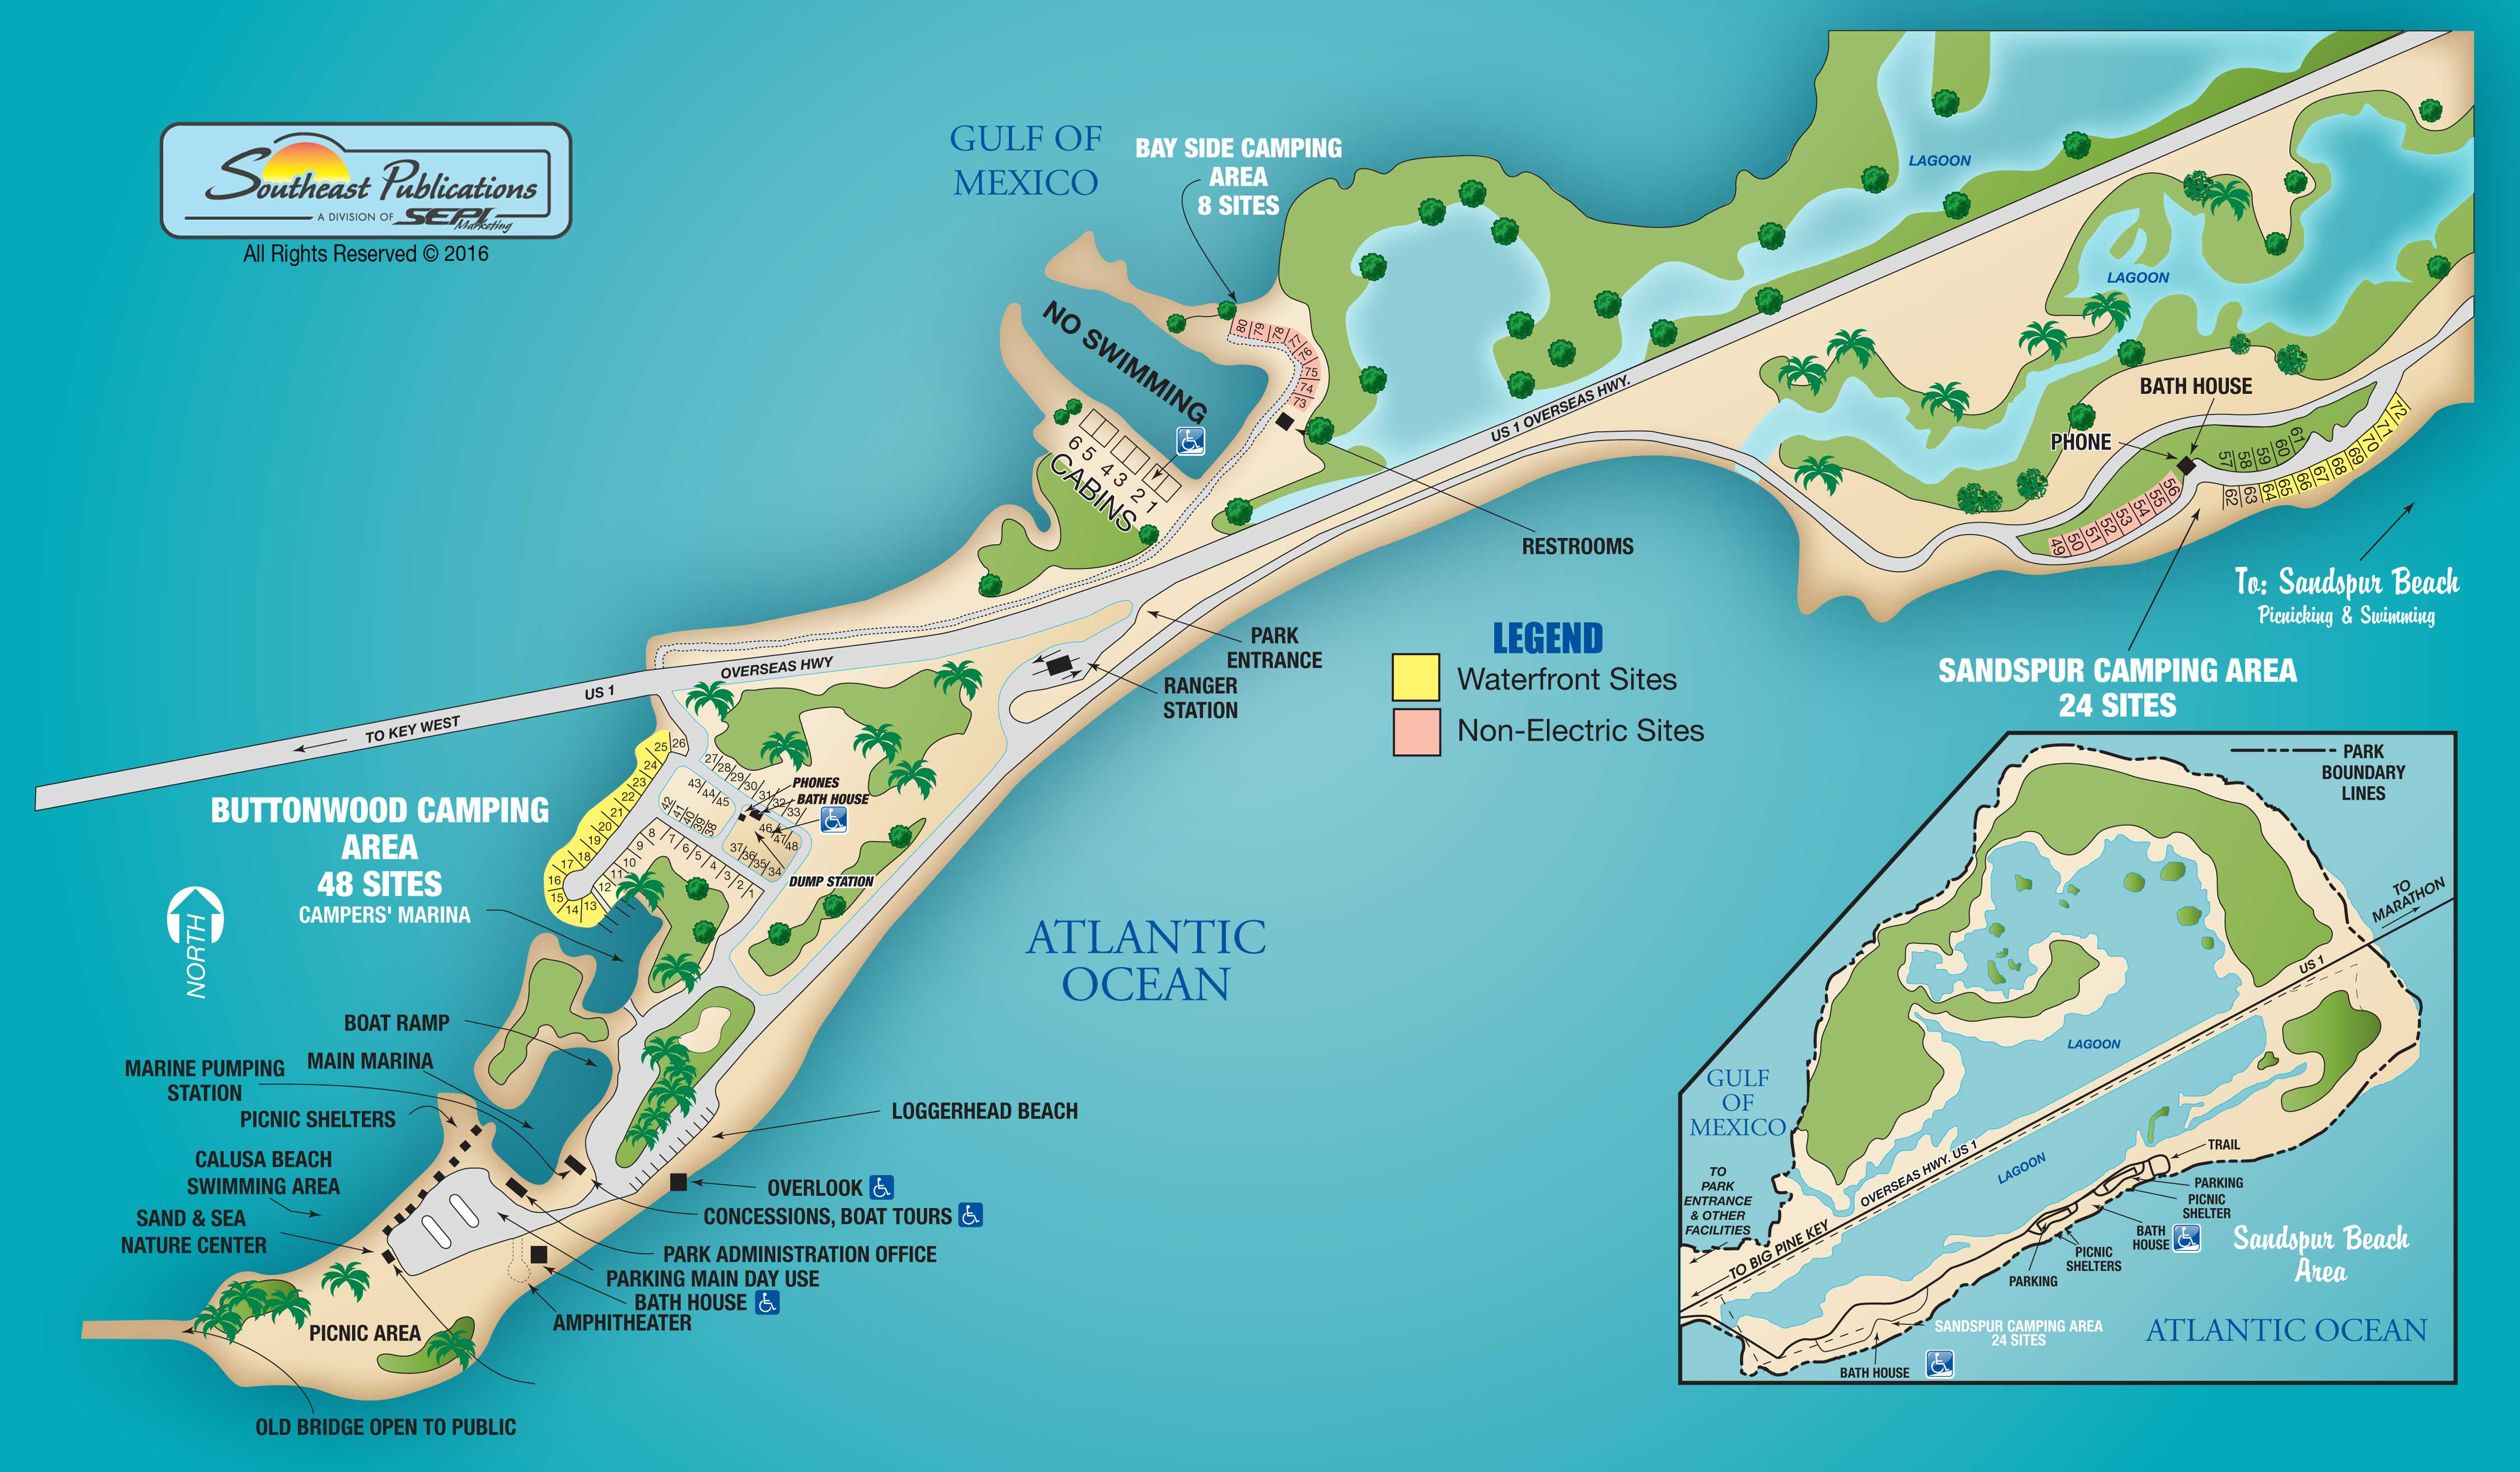 Sp Campground Review Bahia Honda State Park Bahia Honda